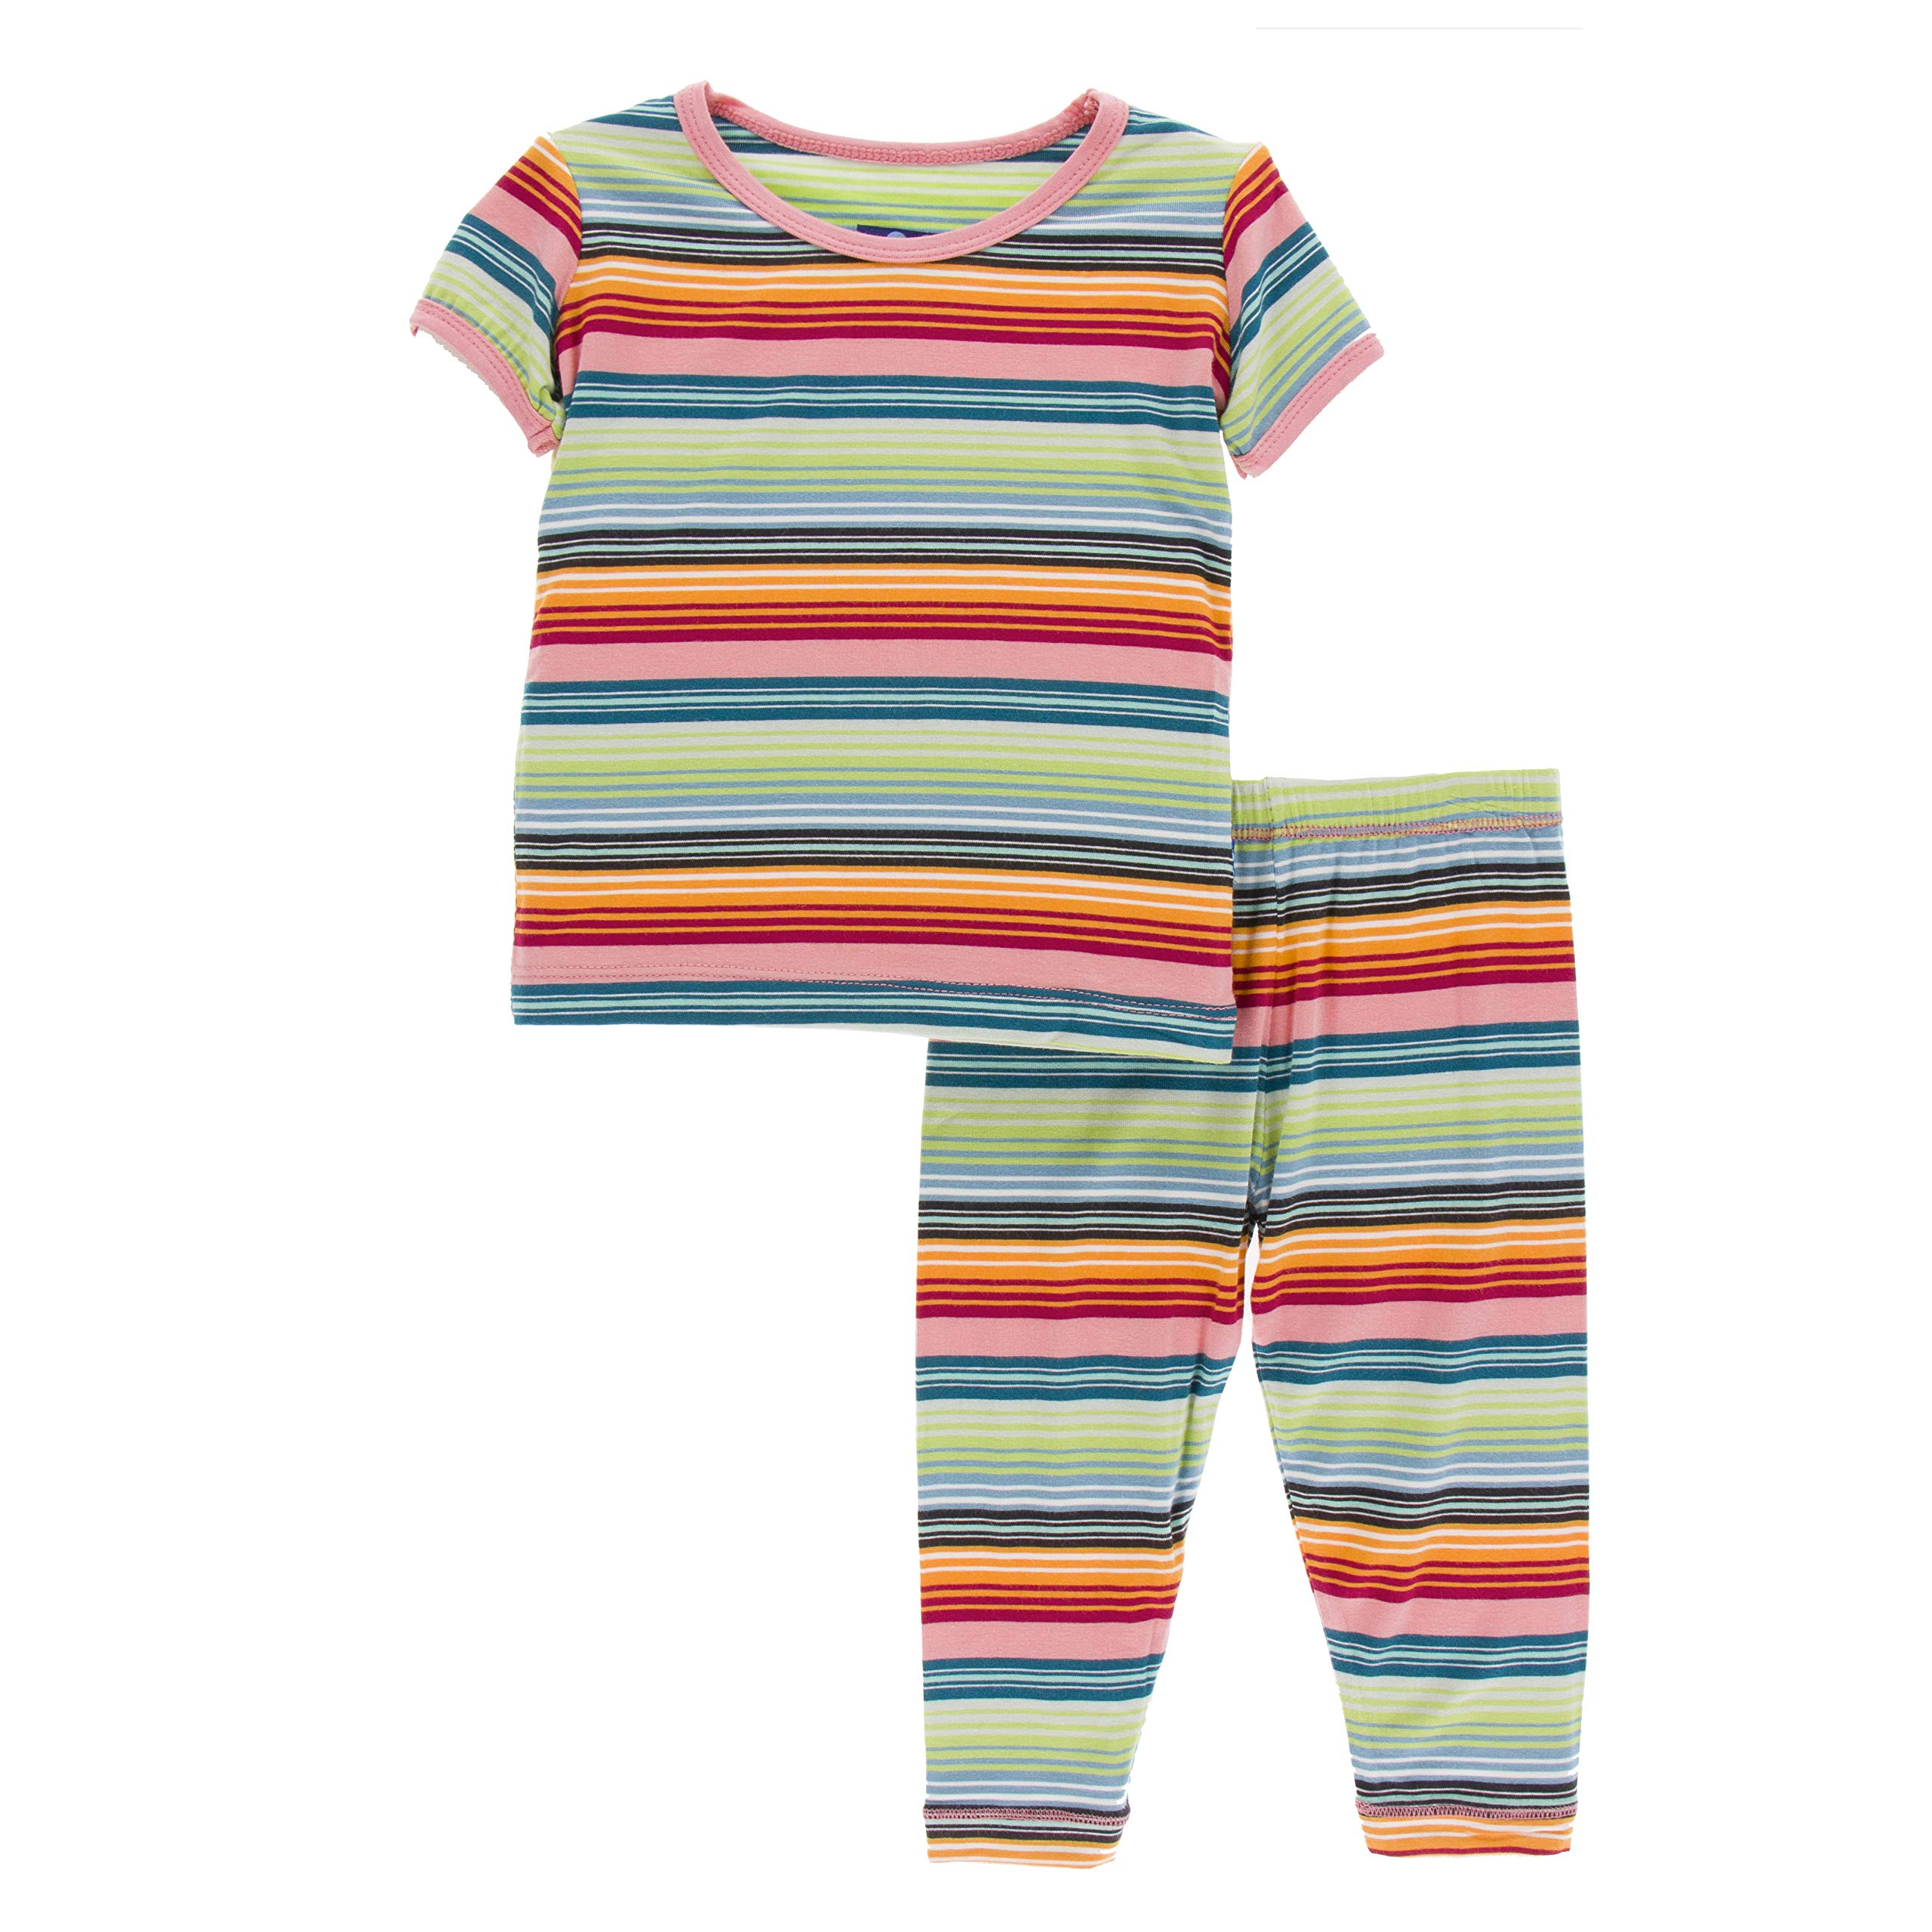 Kickee Pants Little Girls Print Short Sleeve Pajama Set - Cancun Strawberry Stripe, 4T by Kickee Pants